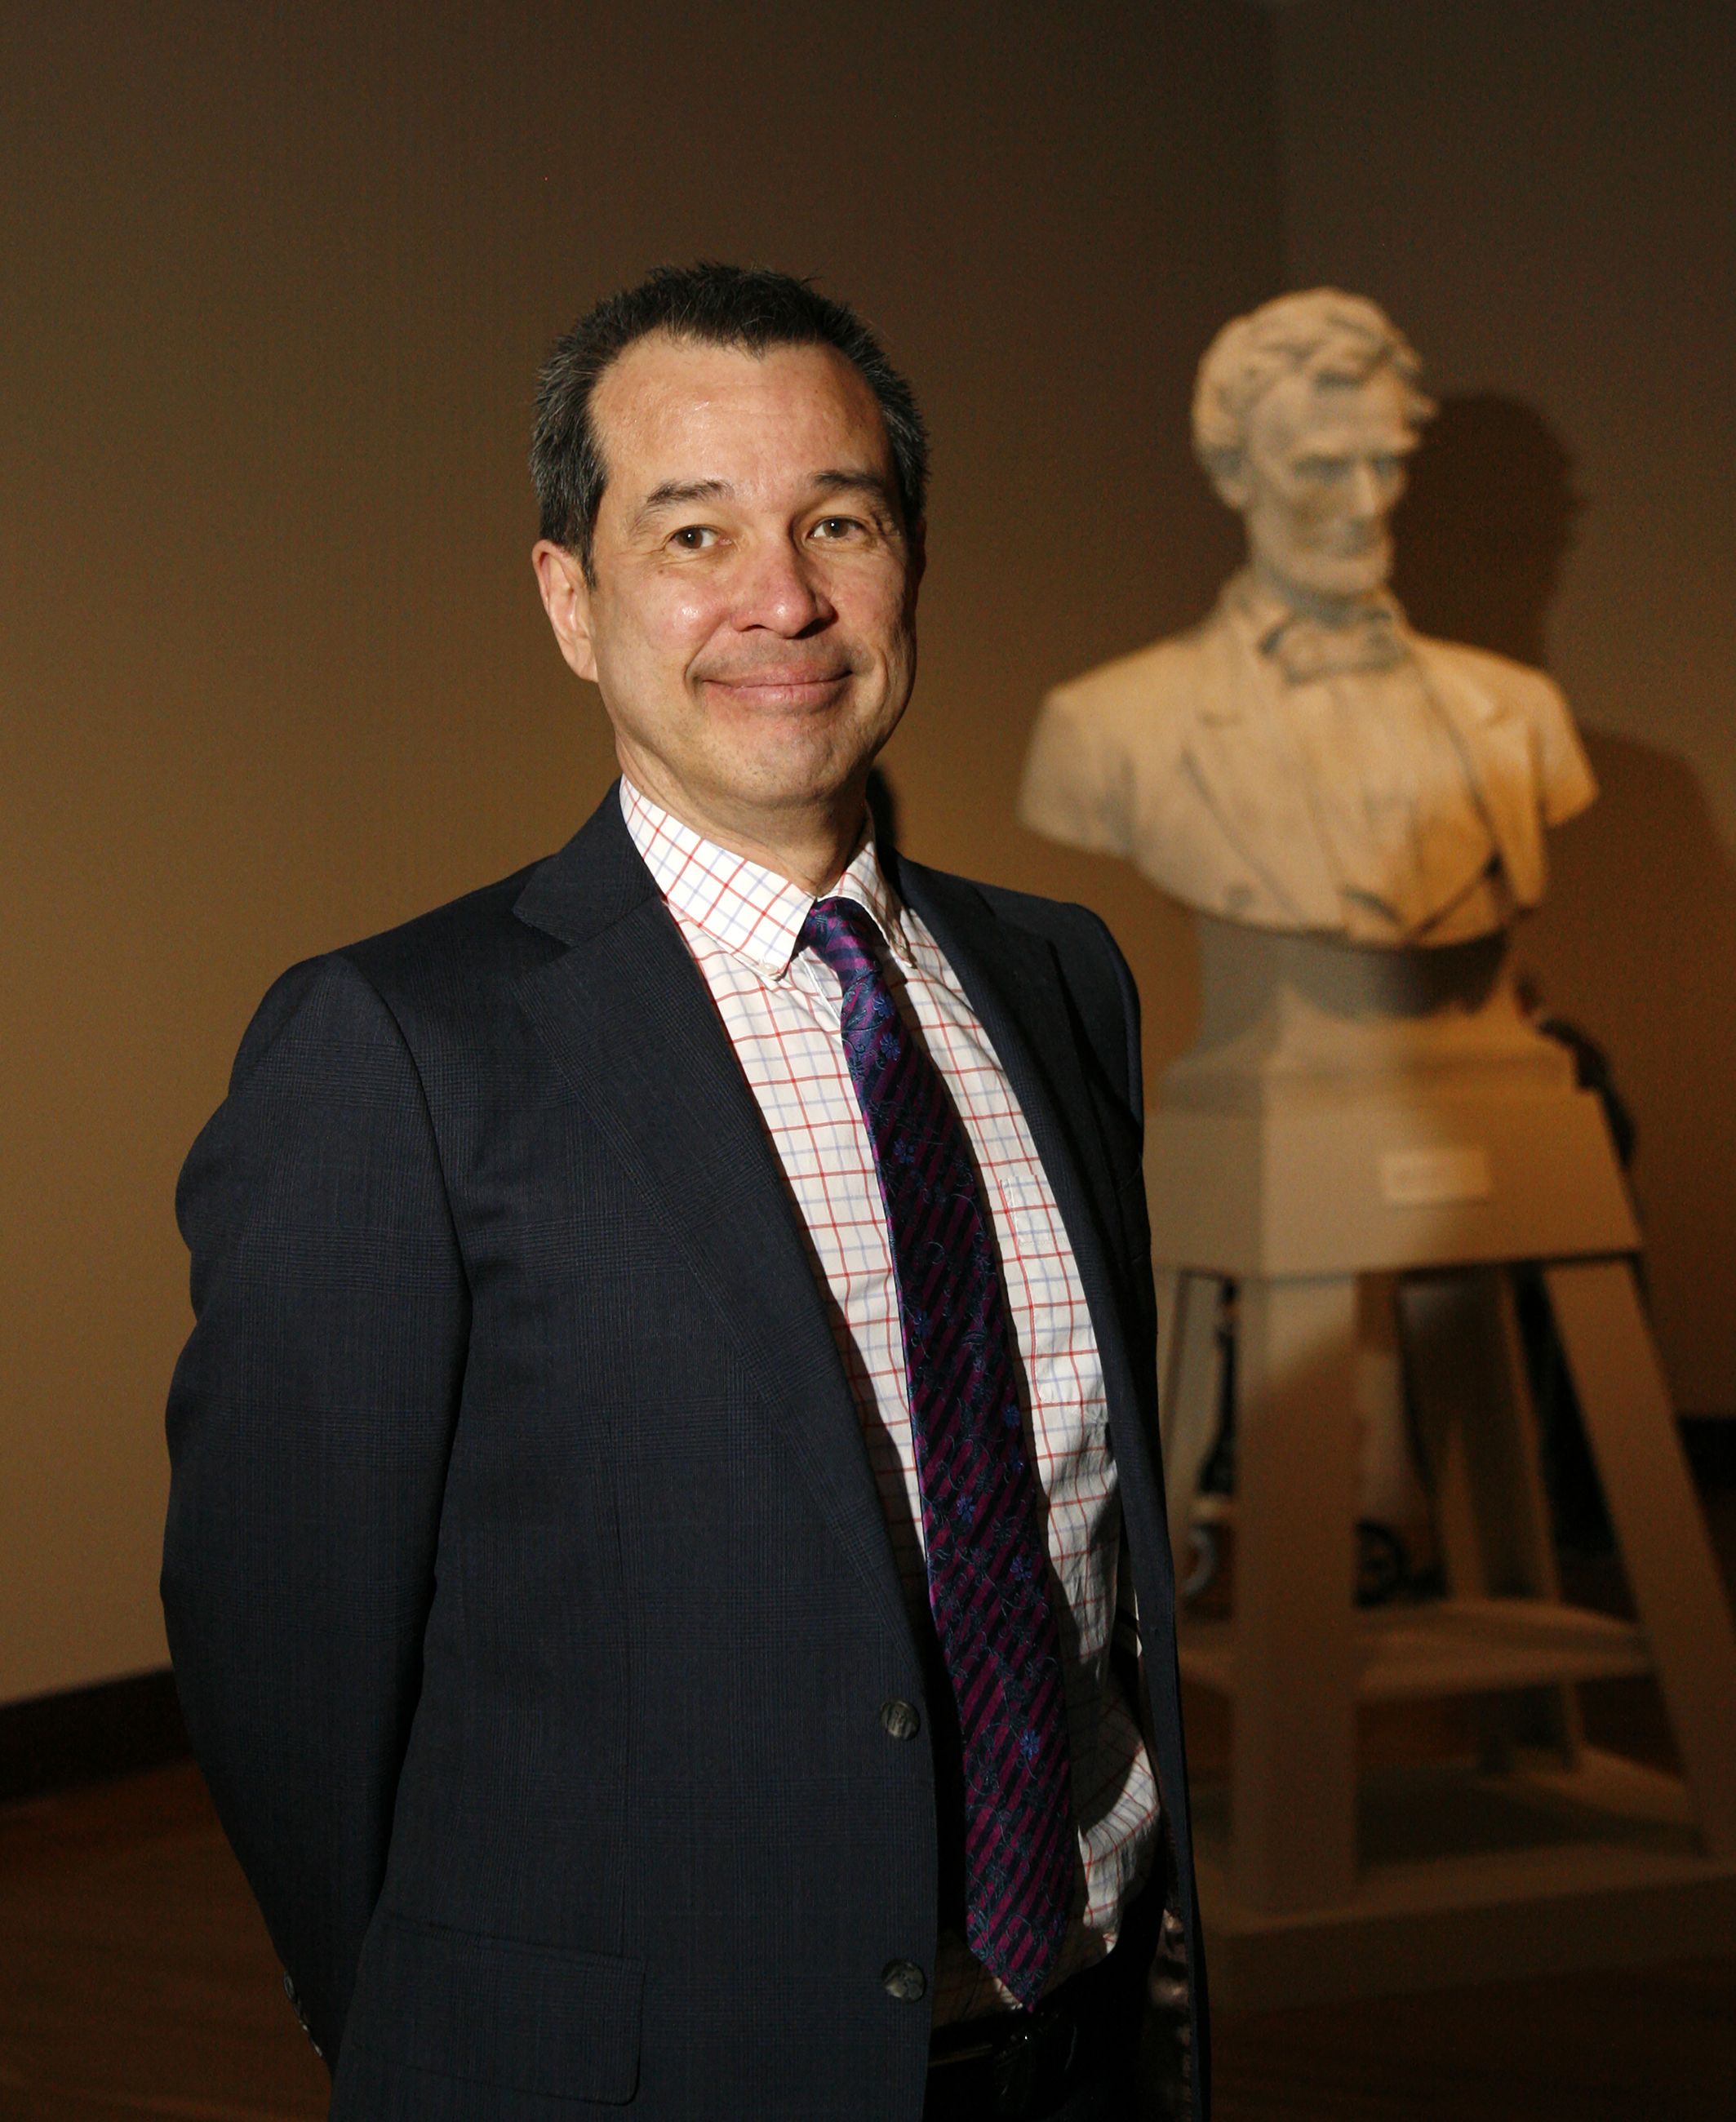 Currier Museum Tour and Lunchfor Six - Enjoy a private guided tour for six through the Currier's latest exhibition with the Director of the Museum, Dr. Alan Chong, followed by lunch with the Director in the Winter Garden Café.Donated by: Currier Museum of Art